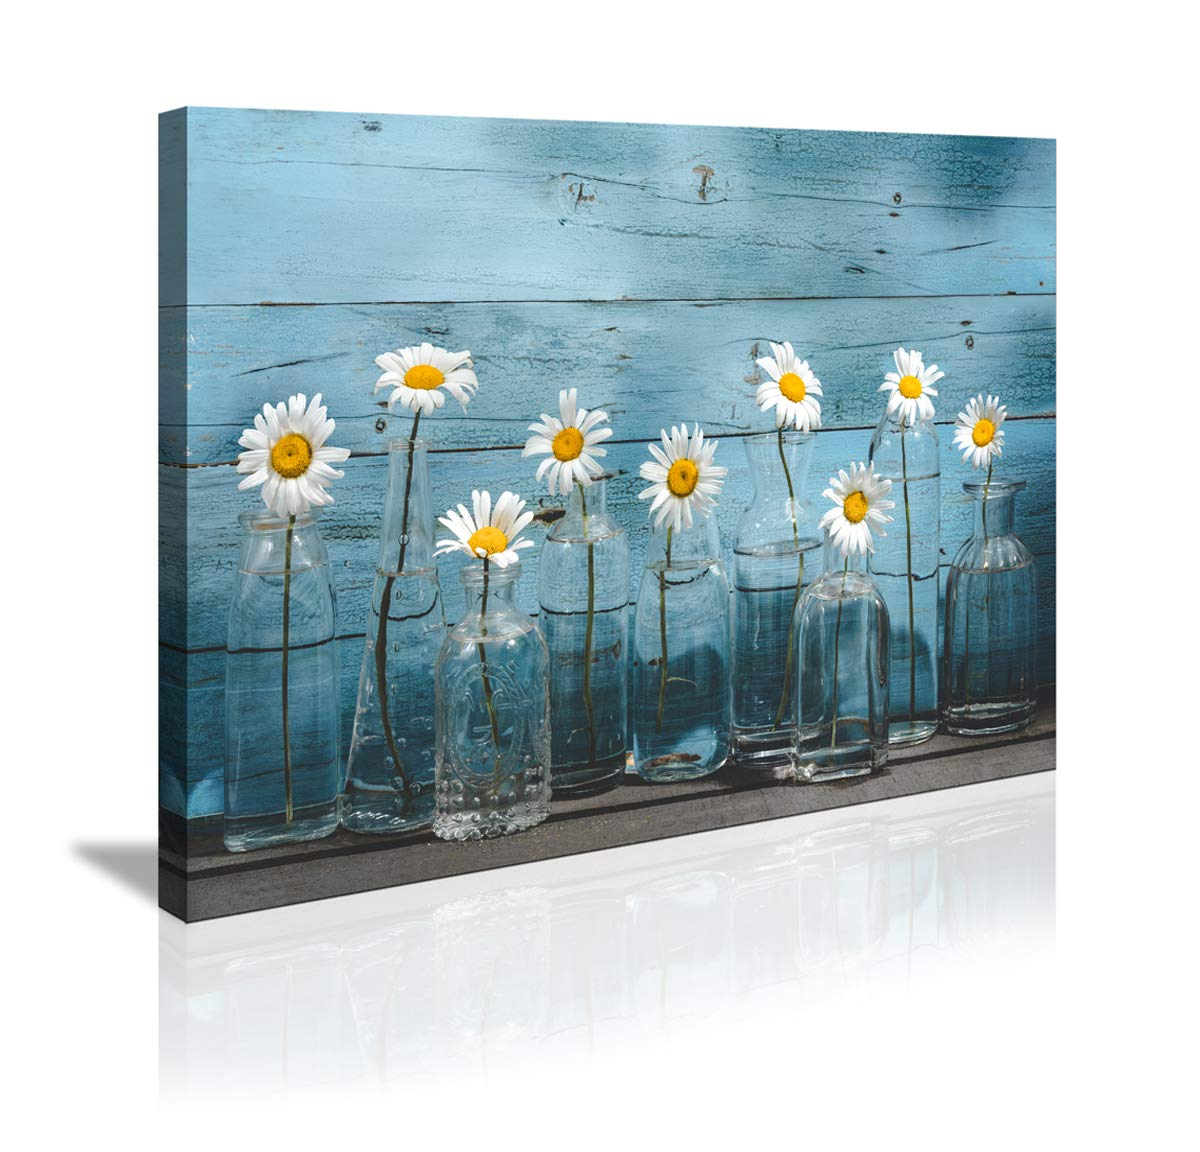 Canvas Wall Art for Home Bathroom Bedroom Office Decoration 1 Panel Vintage Flower Blue Wooden Board Modern Floral Canvas Artwork Daisy Flower Vase Picture Giclee Print on Wall Decor Ready to Hang